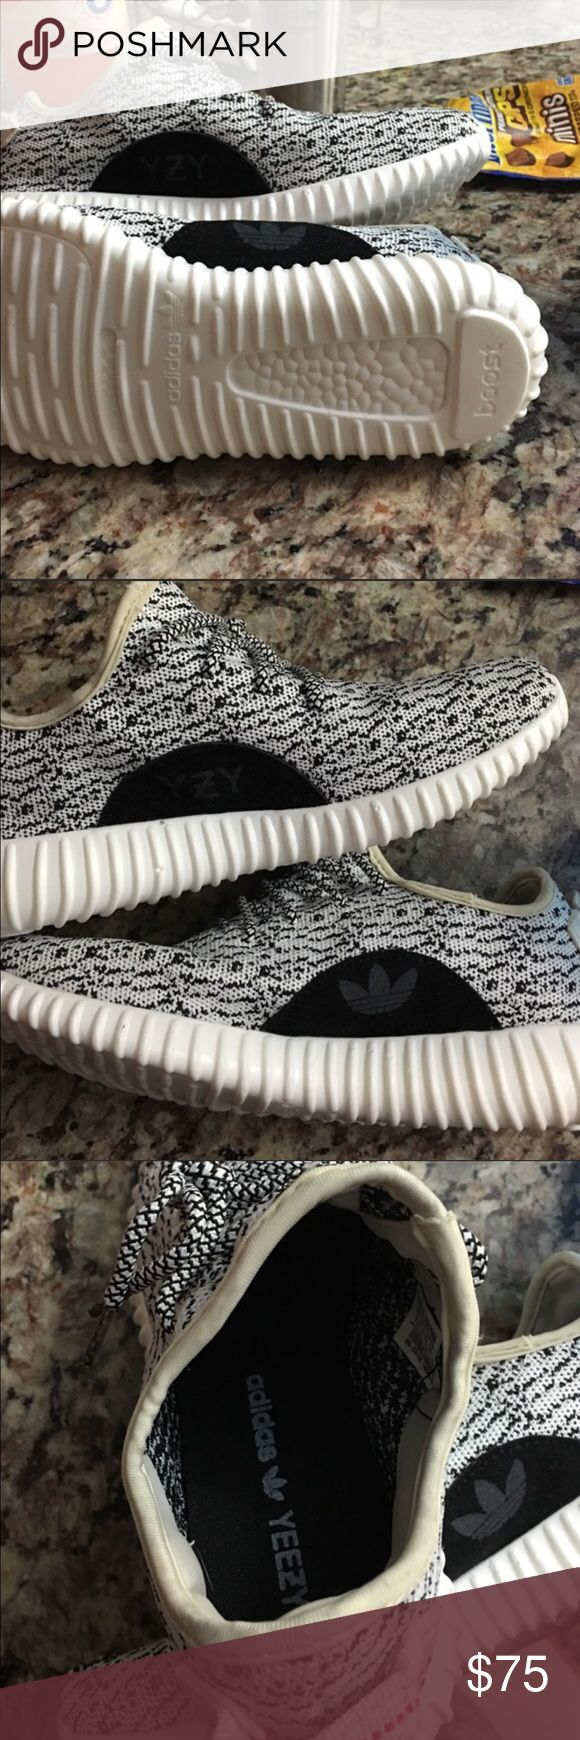 Adidas yeezy boost shoes These are a replica of Adidas Yeezy Boosts. They are in amazing condition. They are a reposh, as they are size 7.5, but they were listed as women's and are, in fact, most likely men's sizing. They are too big for me :( Shoes Athletic Shoes